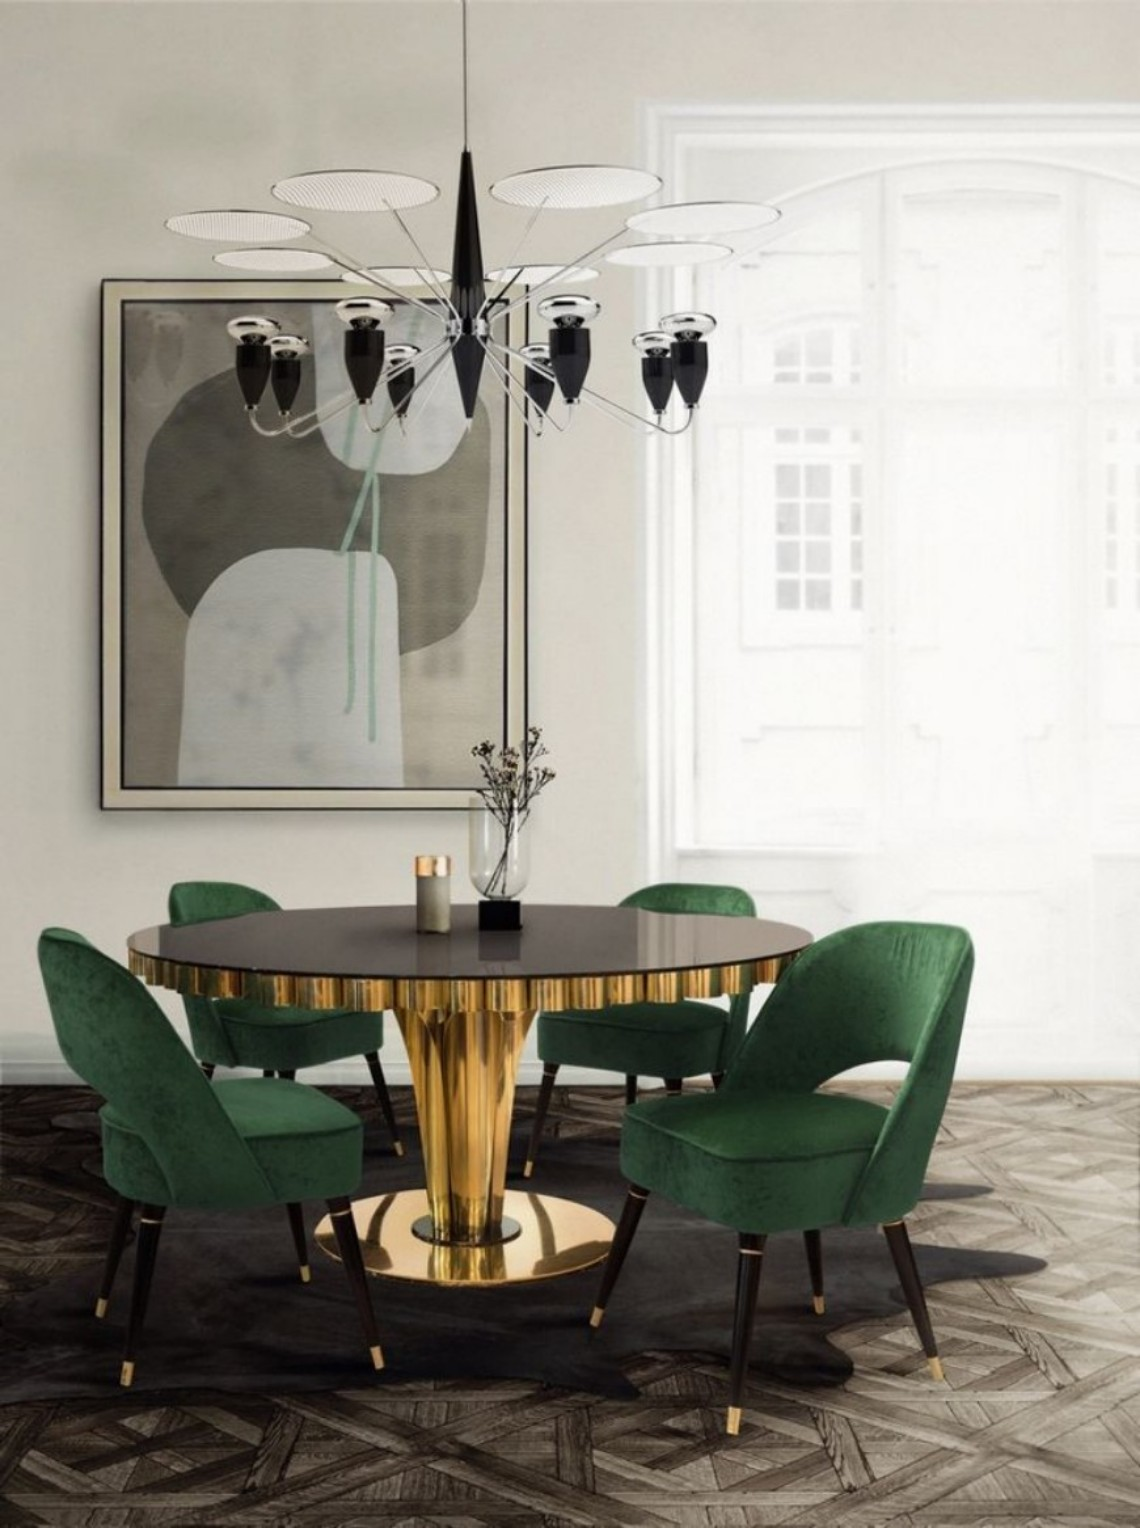 Fall in Love with this Mid-Century Modern Lighting Design mid-century modern Fall in Love with this Mid-Century Modern Lighting Design Fall in Love with this Mid Century Modern Lighting Design 8